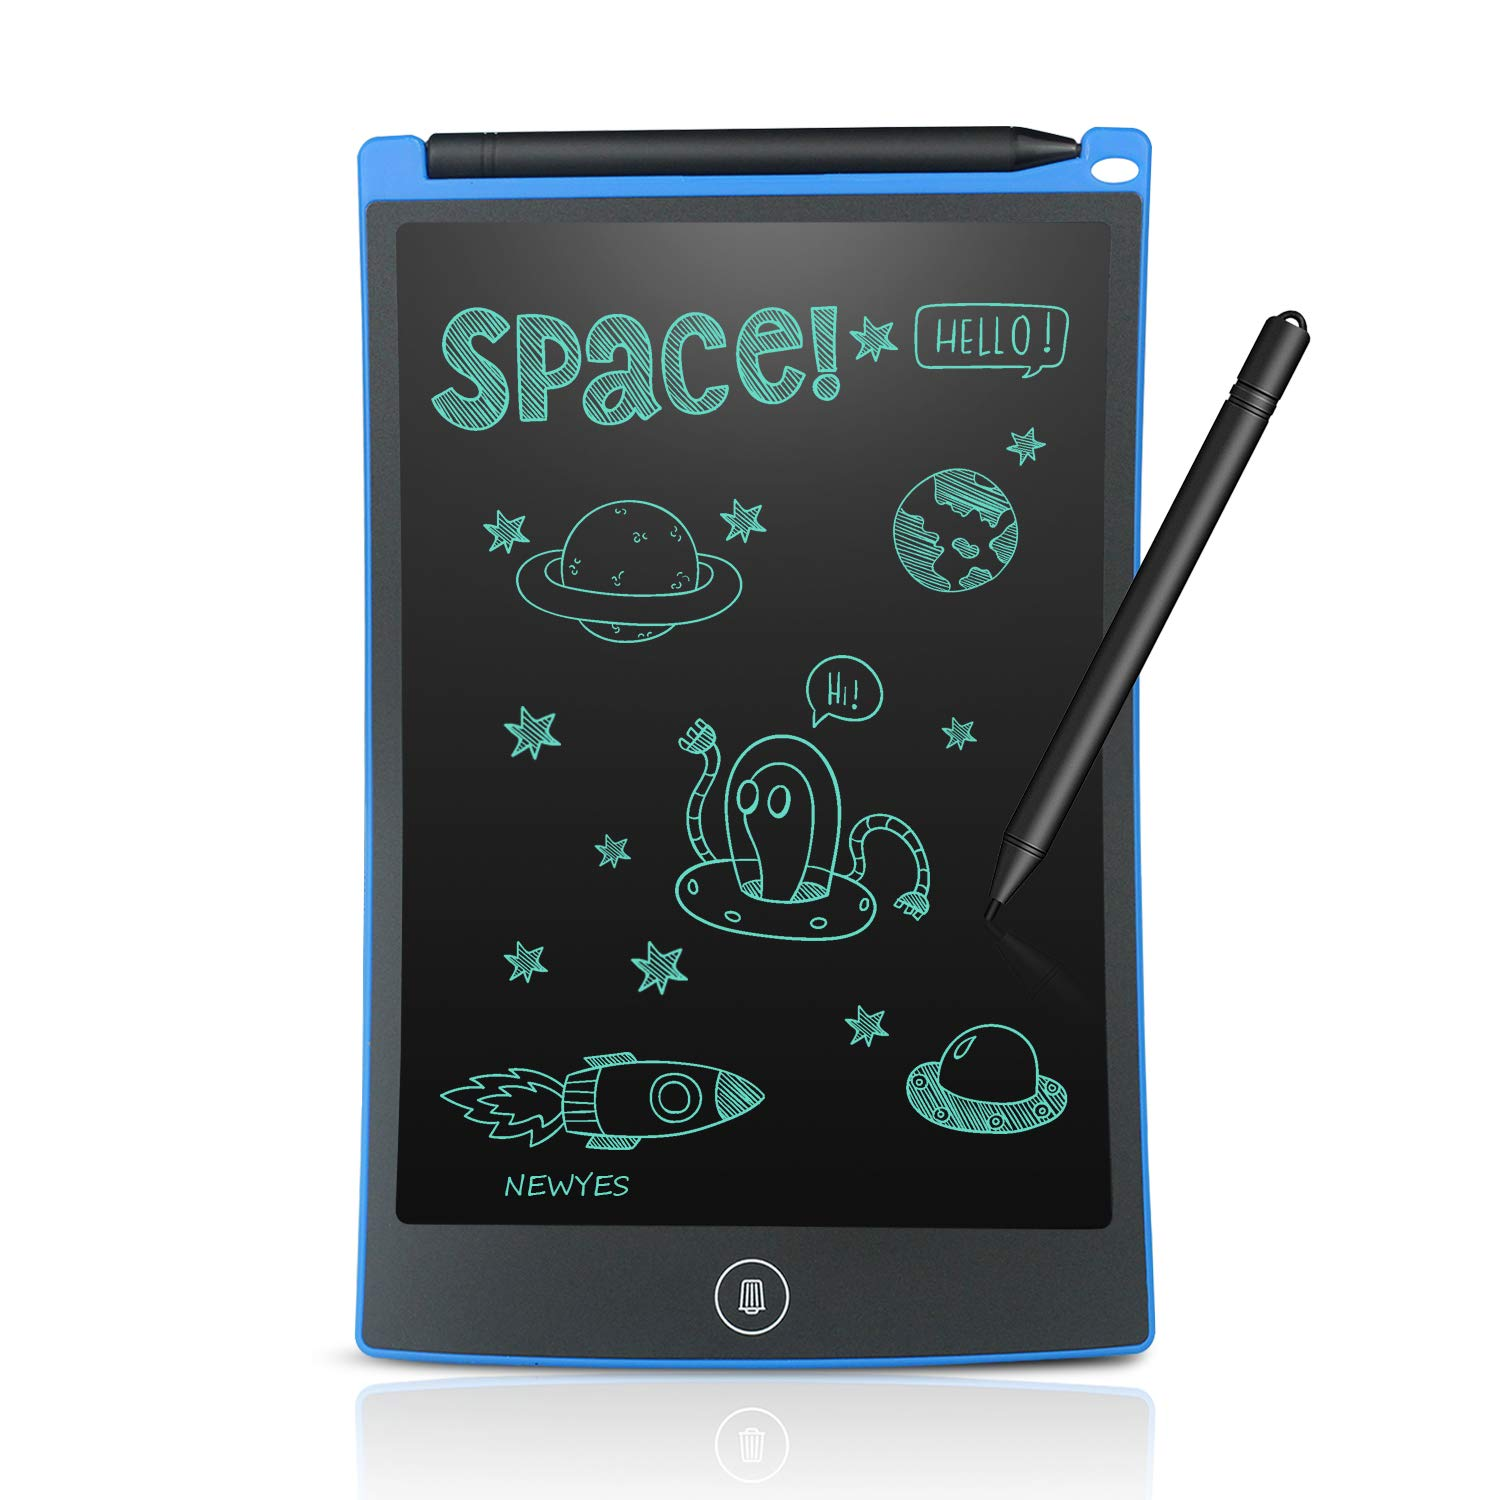 NEWYES 8.5 Inch Doodle Pad LCD Writing Tablet Kitchen Fridge Memo Board Toys for Kids(Blue) by NEWYES